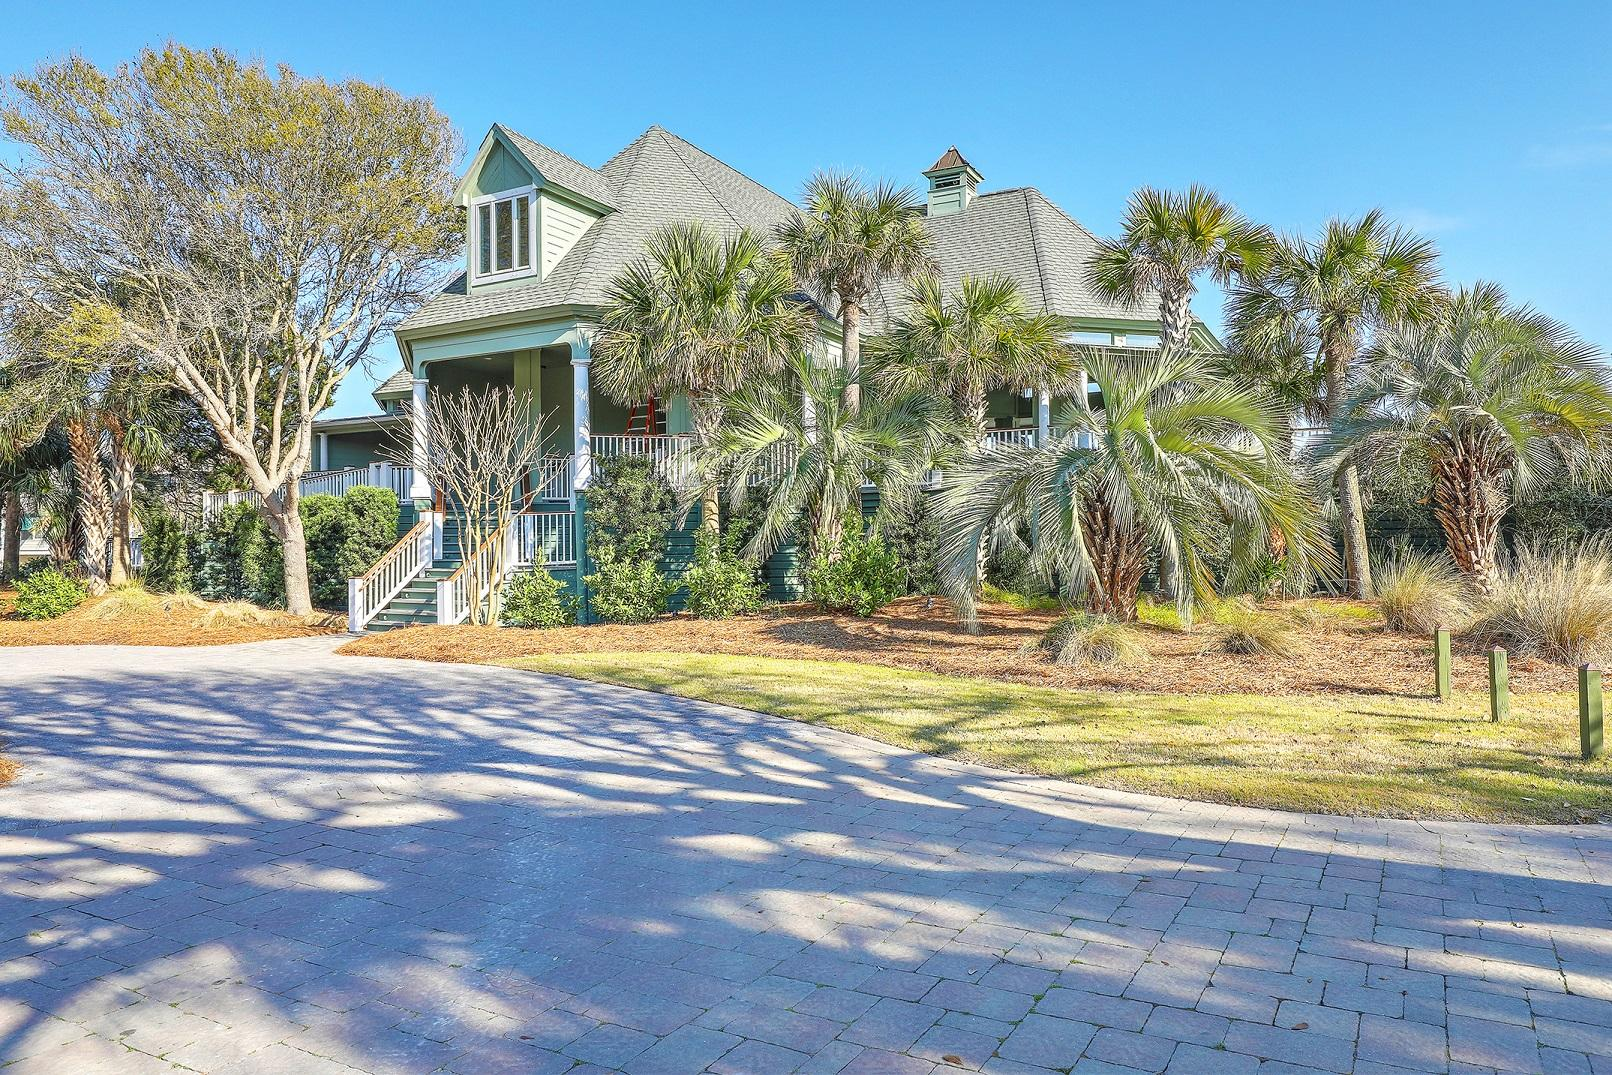 Wild Dunes Homes For Sale - 55 Seagrass, Isle of Palms, SC - 19